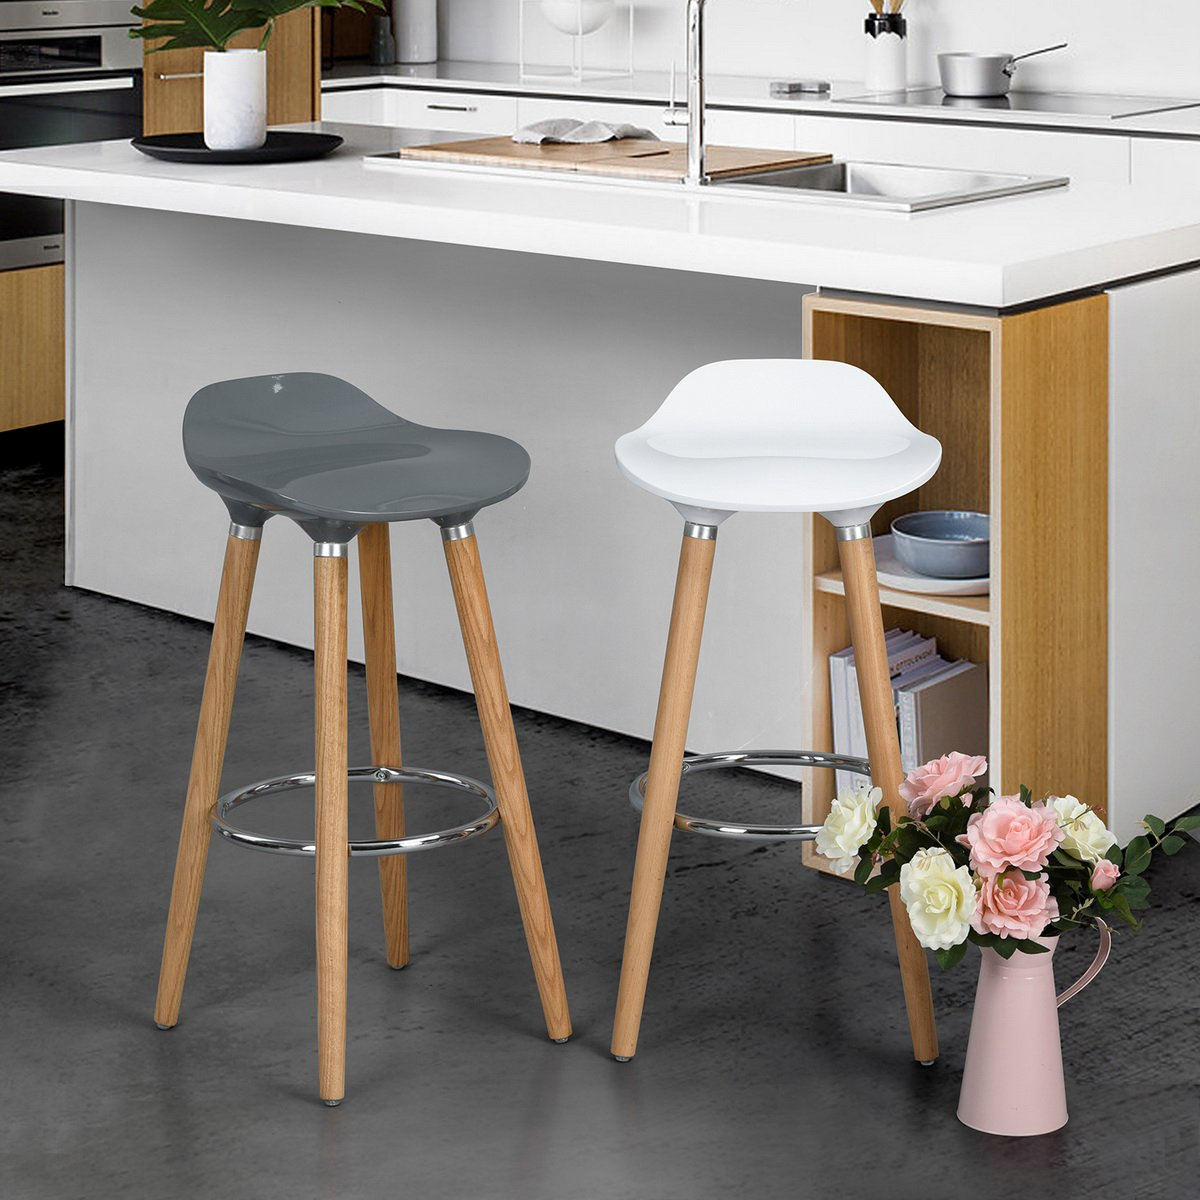 Amazon.com: House in Box Bar Stools Set of 2 Modern Counter Height Stools Pub Bar Chair Side Chairs with Wood Legs ABS Seat (White): Kitchen & Dining